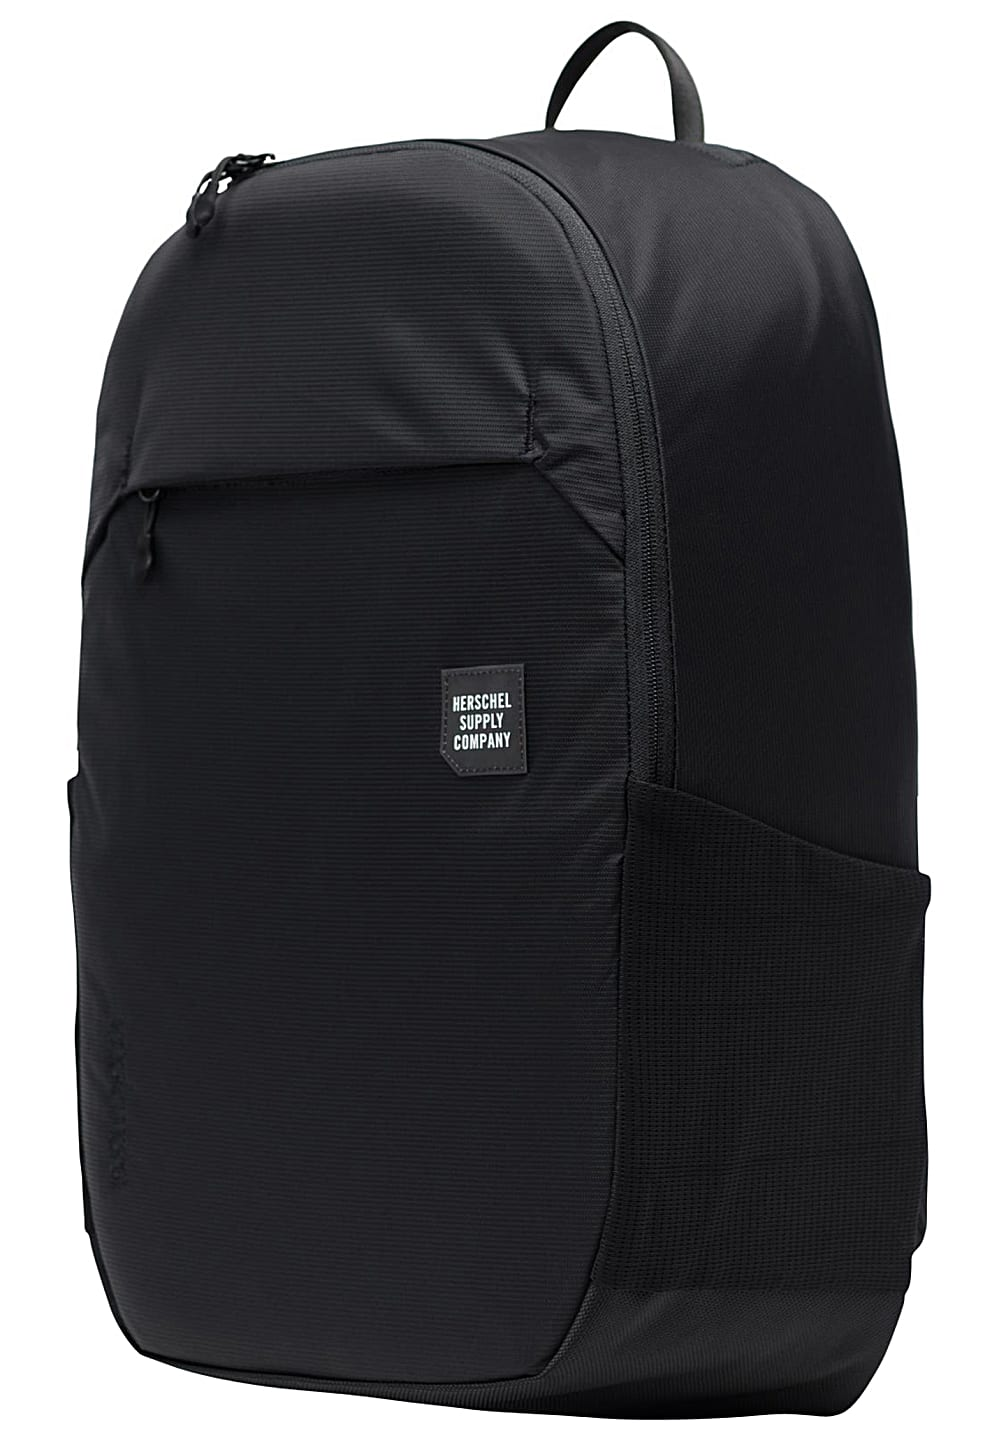 9afd0d2208d Herschel SUPPLY CO Mammoth Large 23L - Backpack - Black - Planet Sports